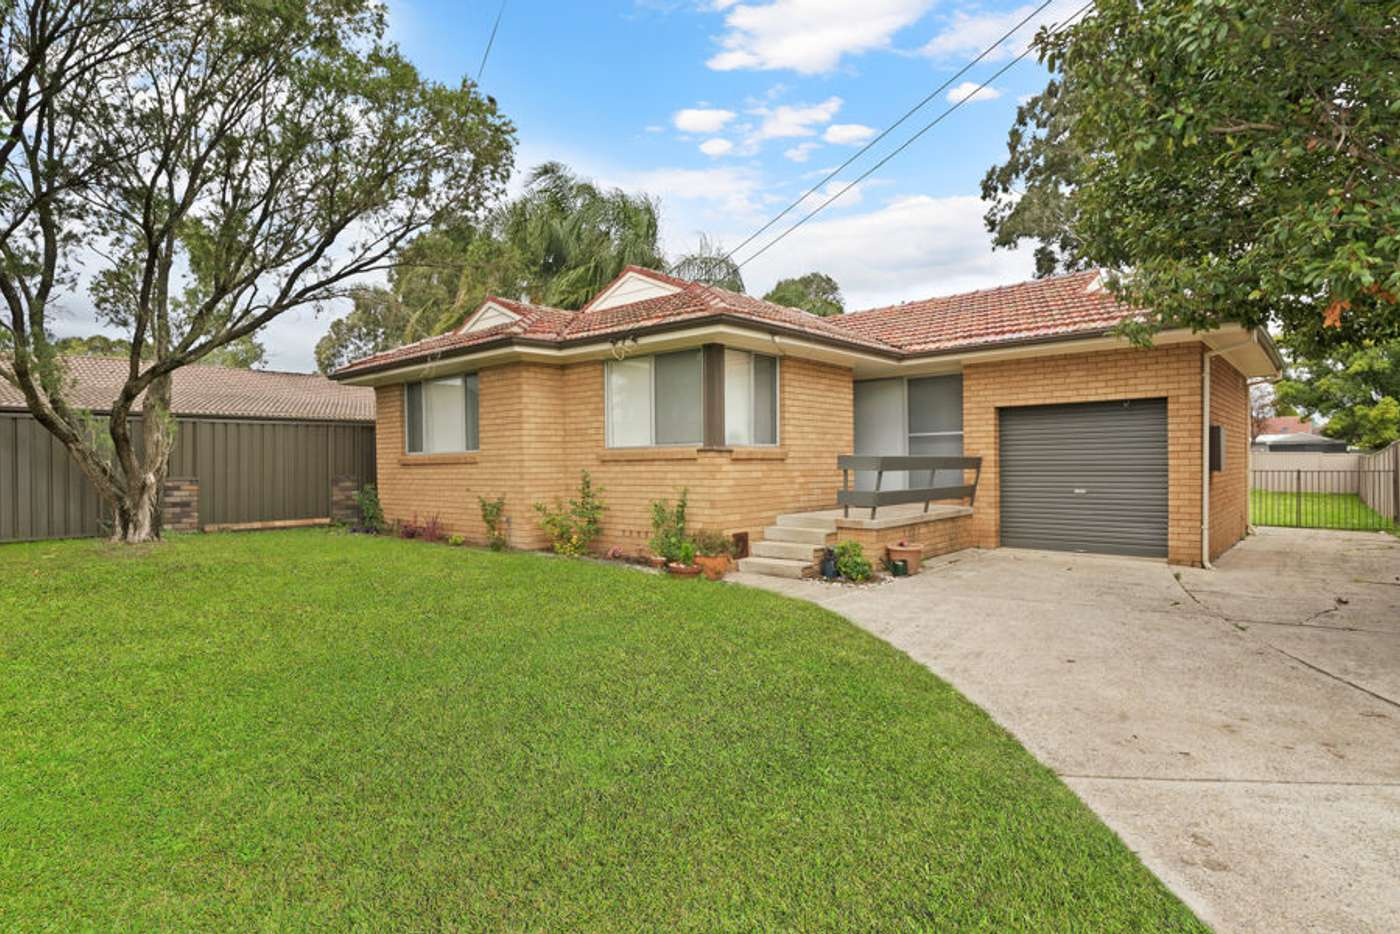 Main view of Homely house listing, 13 Deborah Place, Riverstone NSW 2765